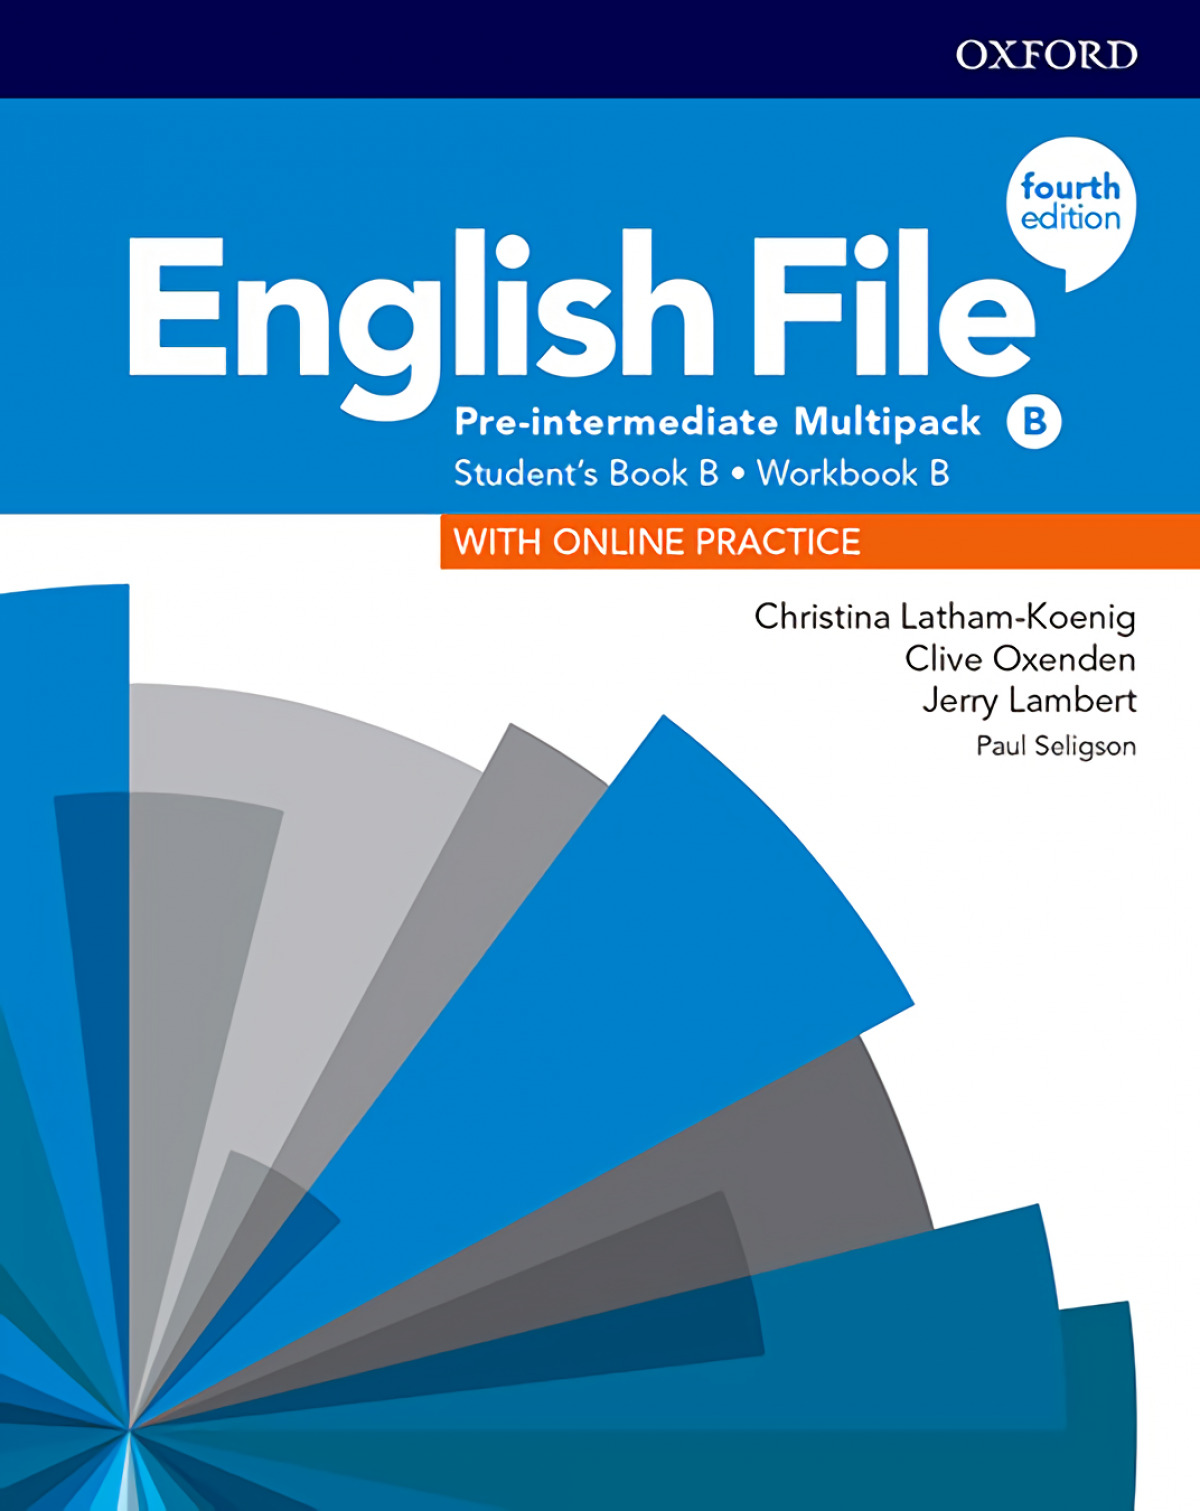 ENGLISH FILE PRE INTERMEDIATE MULTIPACK B FOURTH EDITION